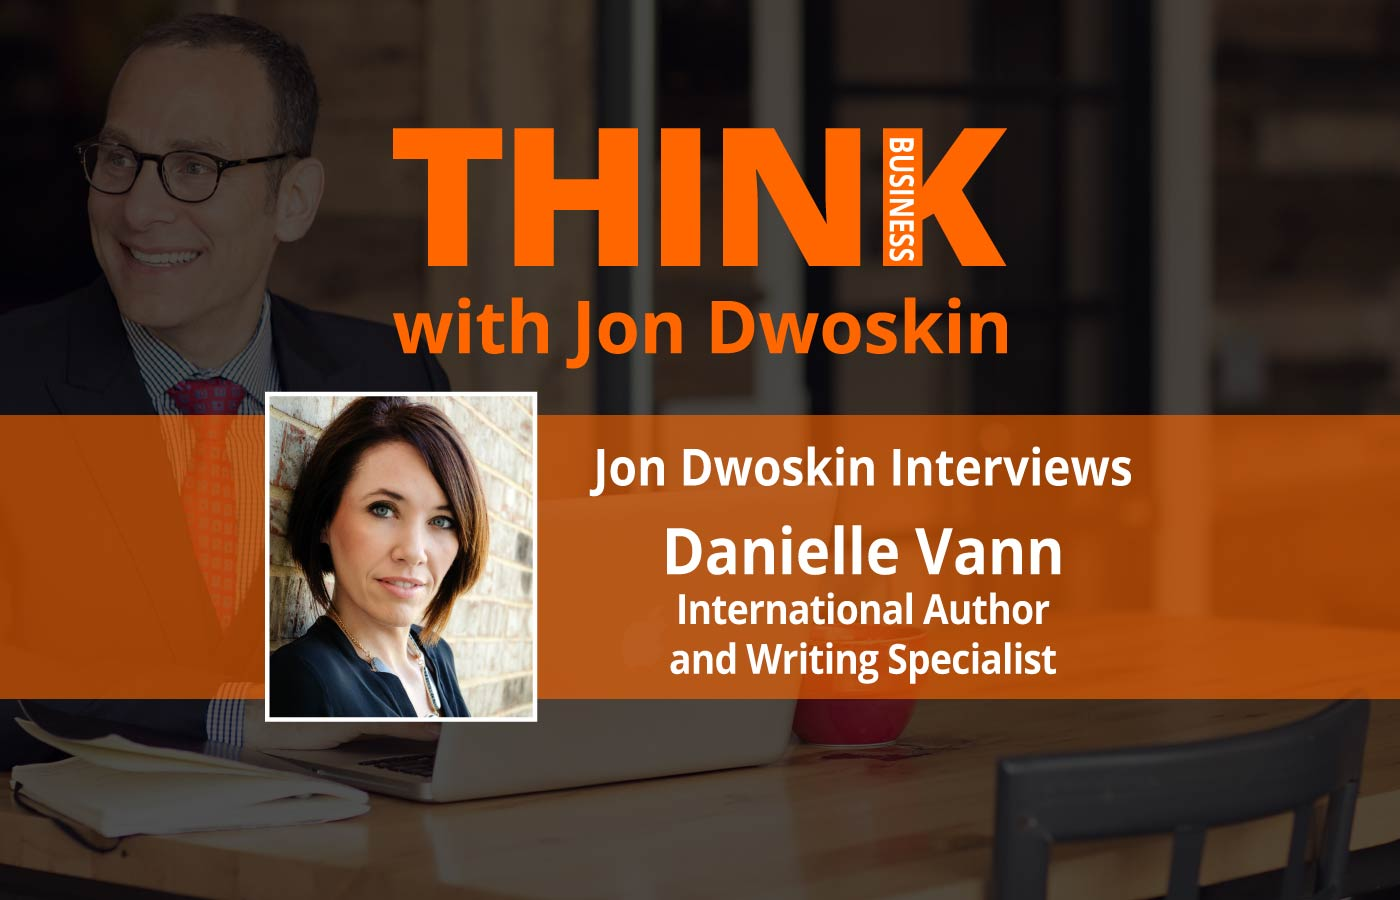 THINK Business Podcast: Jon Dwoskin Interviews Danielle Vann, International Author and Writing Specialist